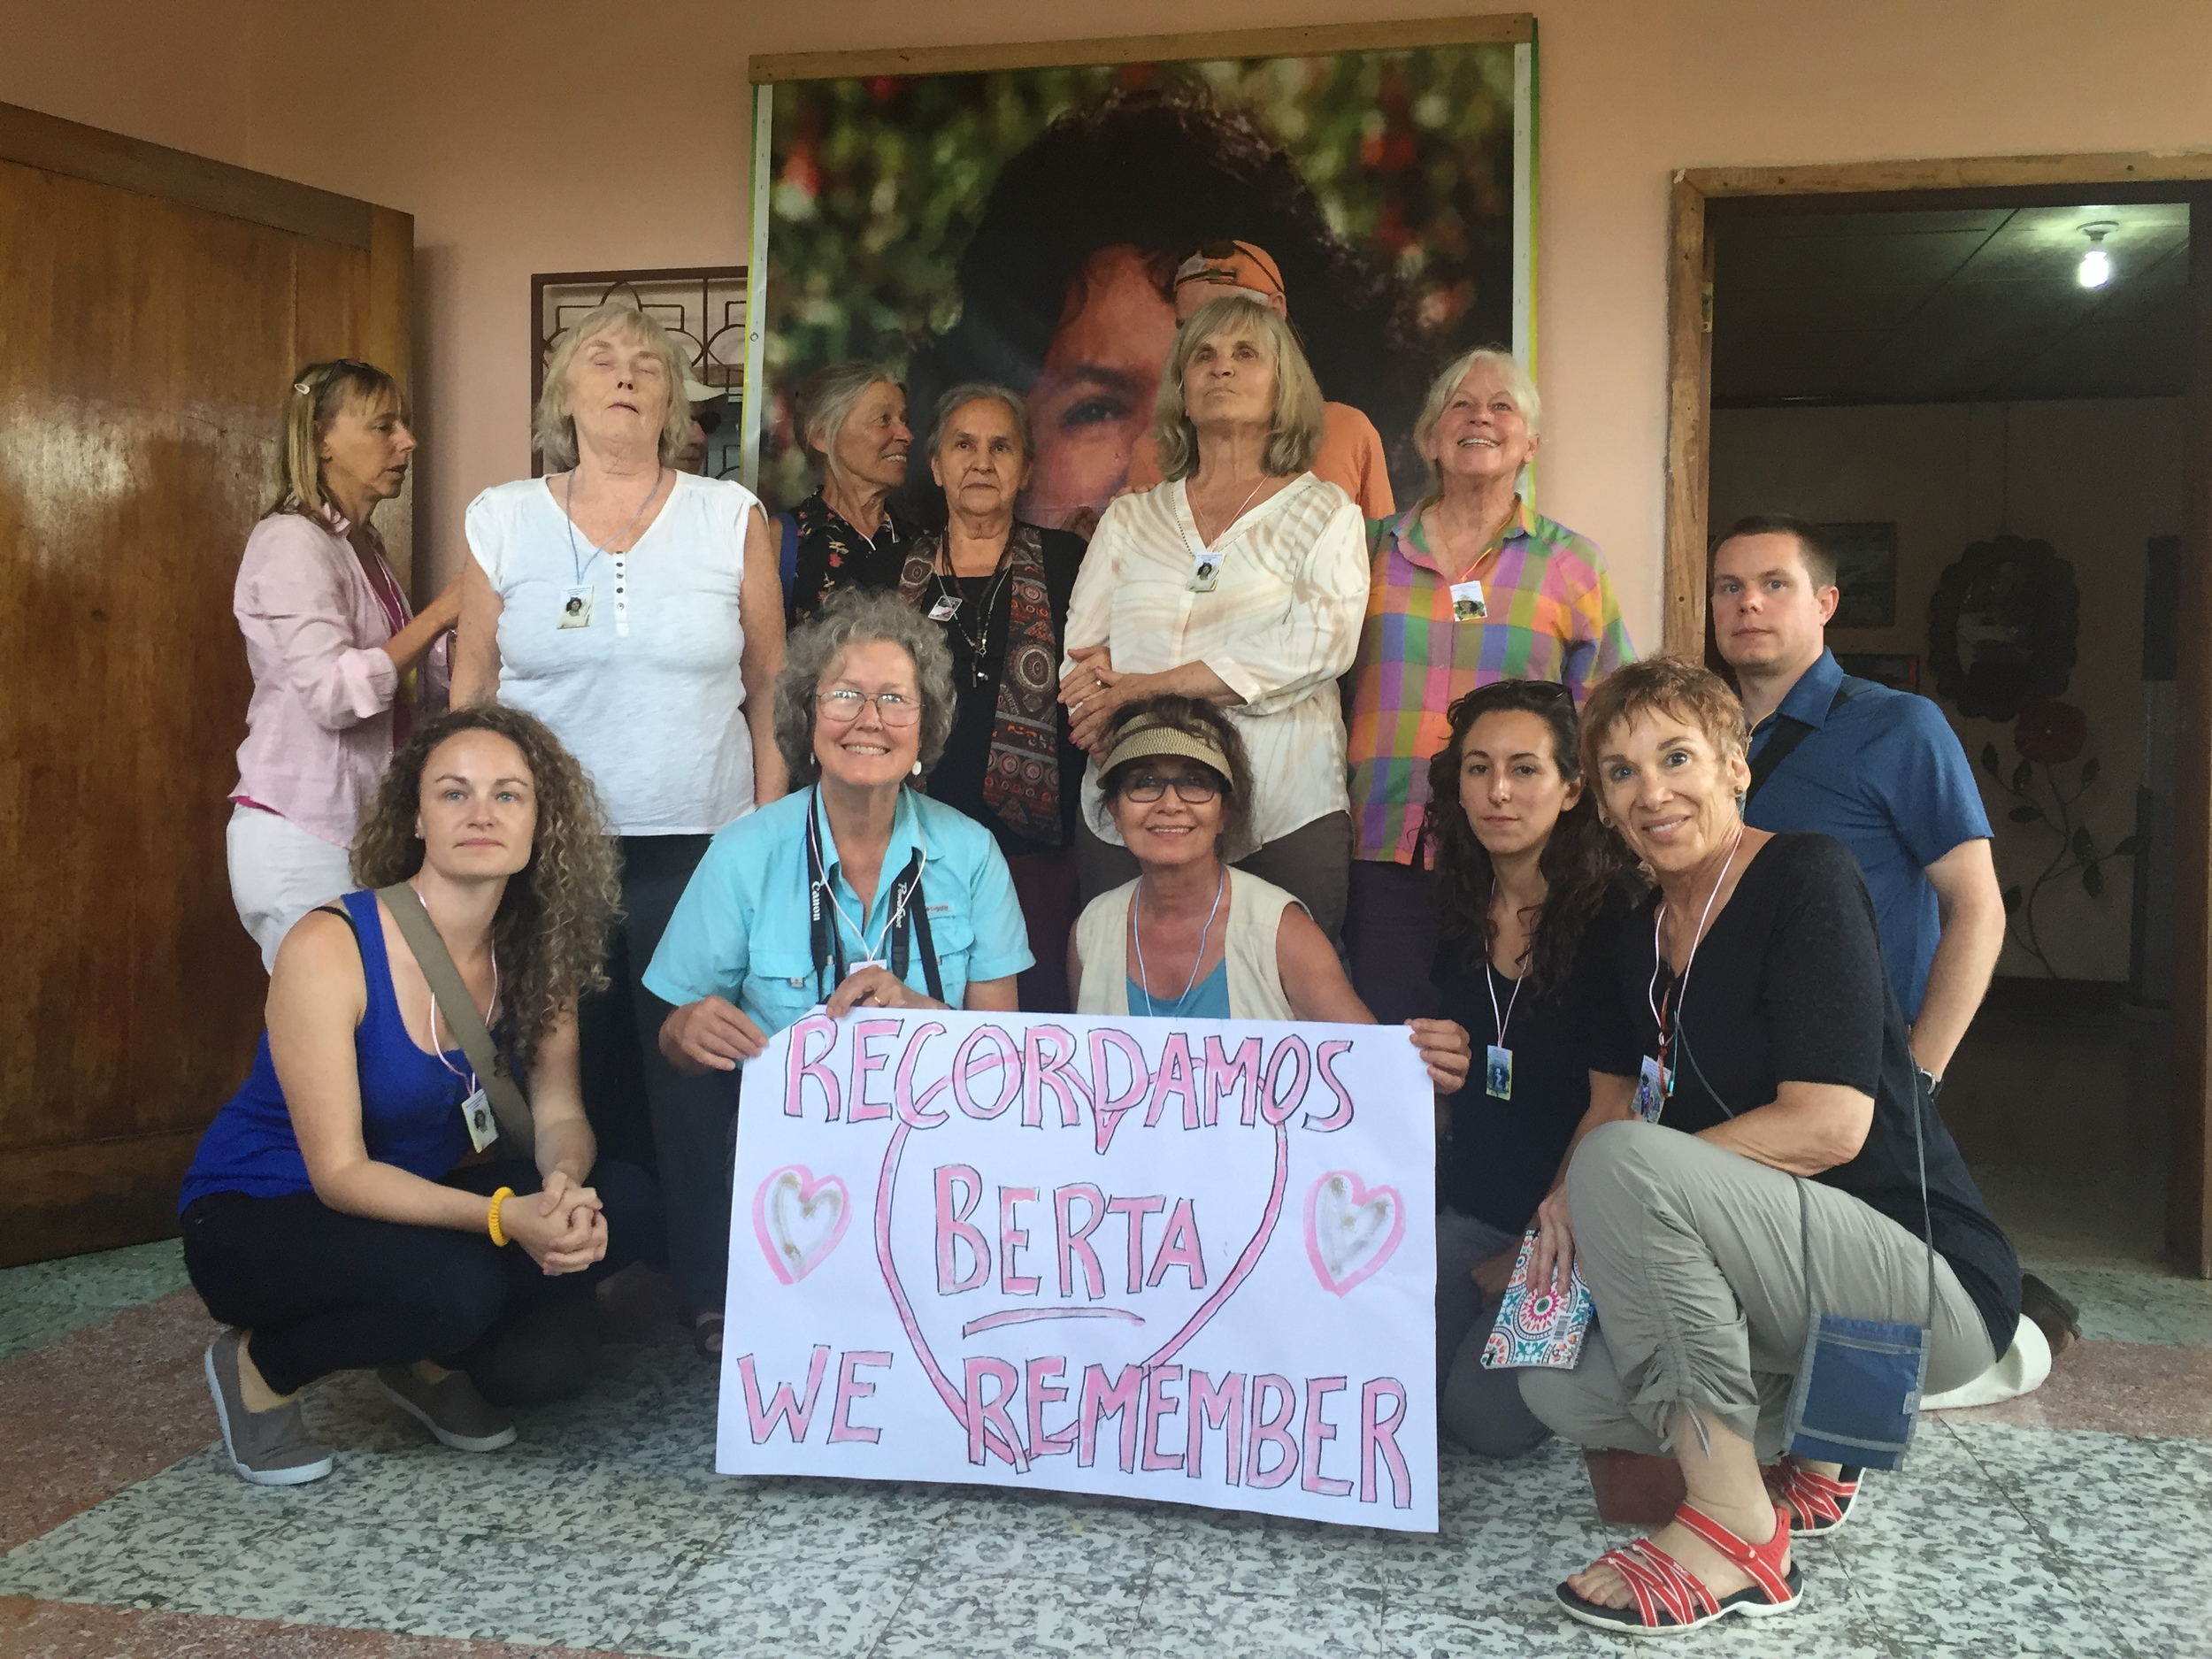 Visiting Berta Caceres' mother, Doña Austra Berta Flores and family at her house in La Esperanza.